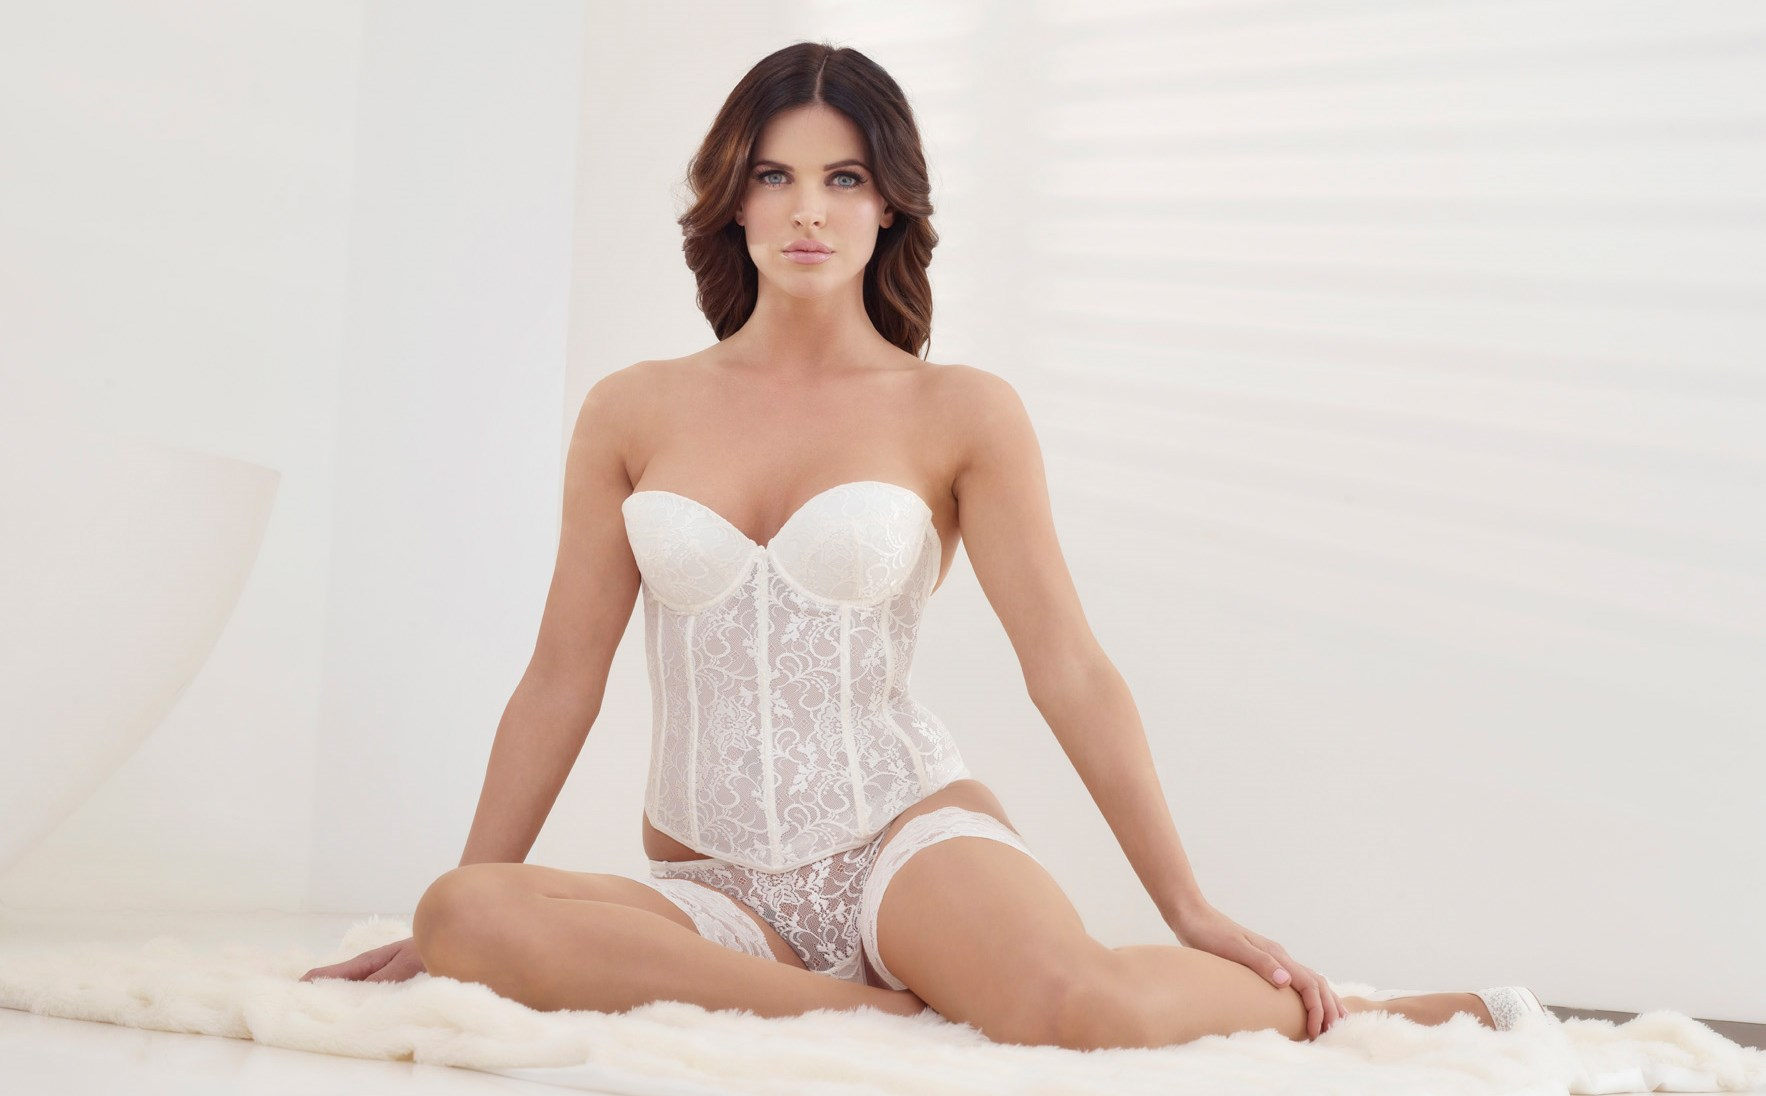 Jupon Bridal Lingerie and Accessories in Carlisle from Simply Koko